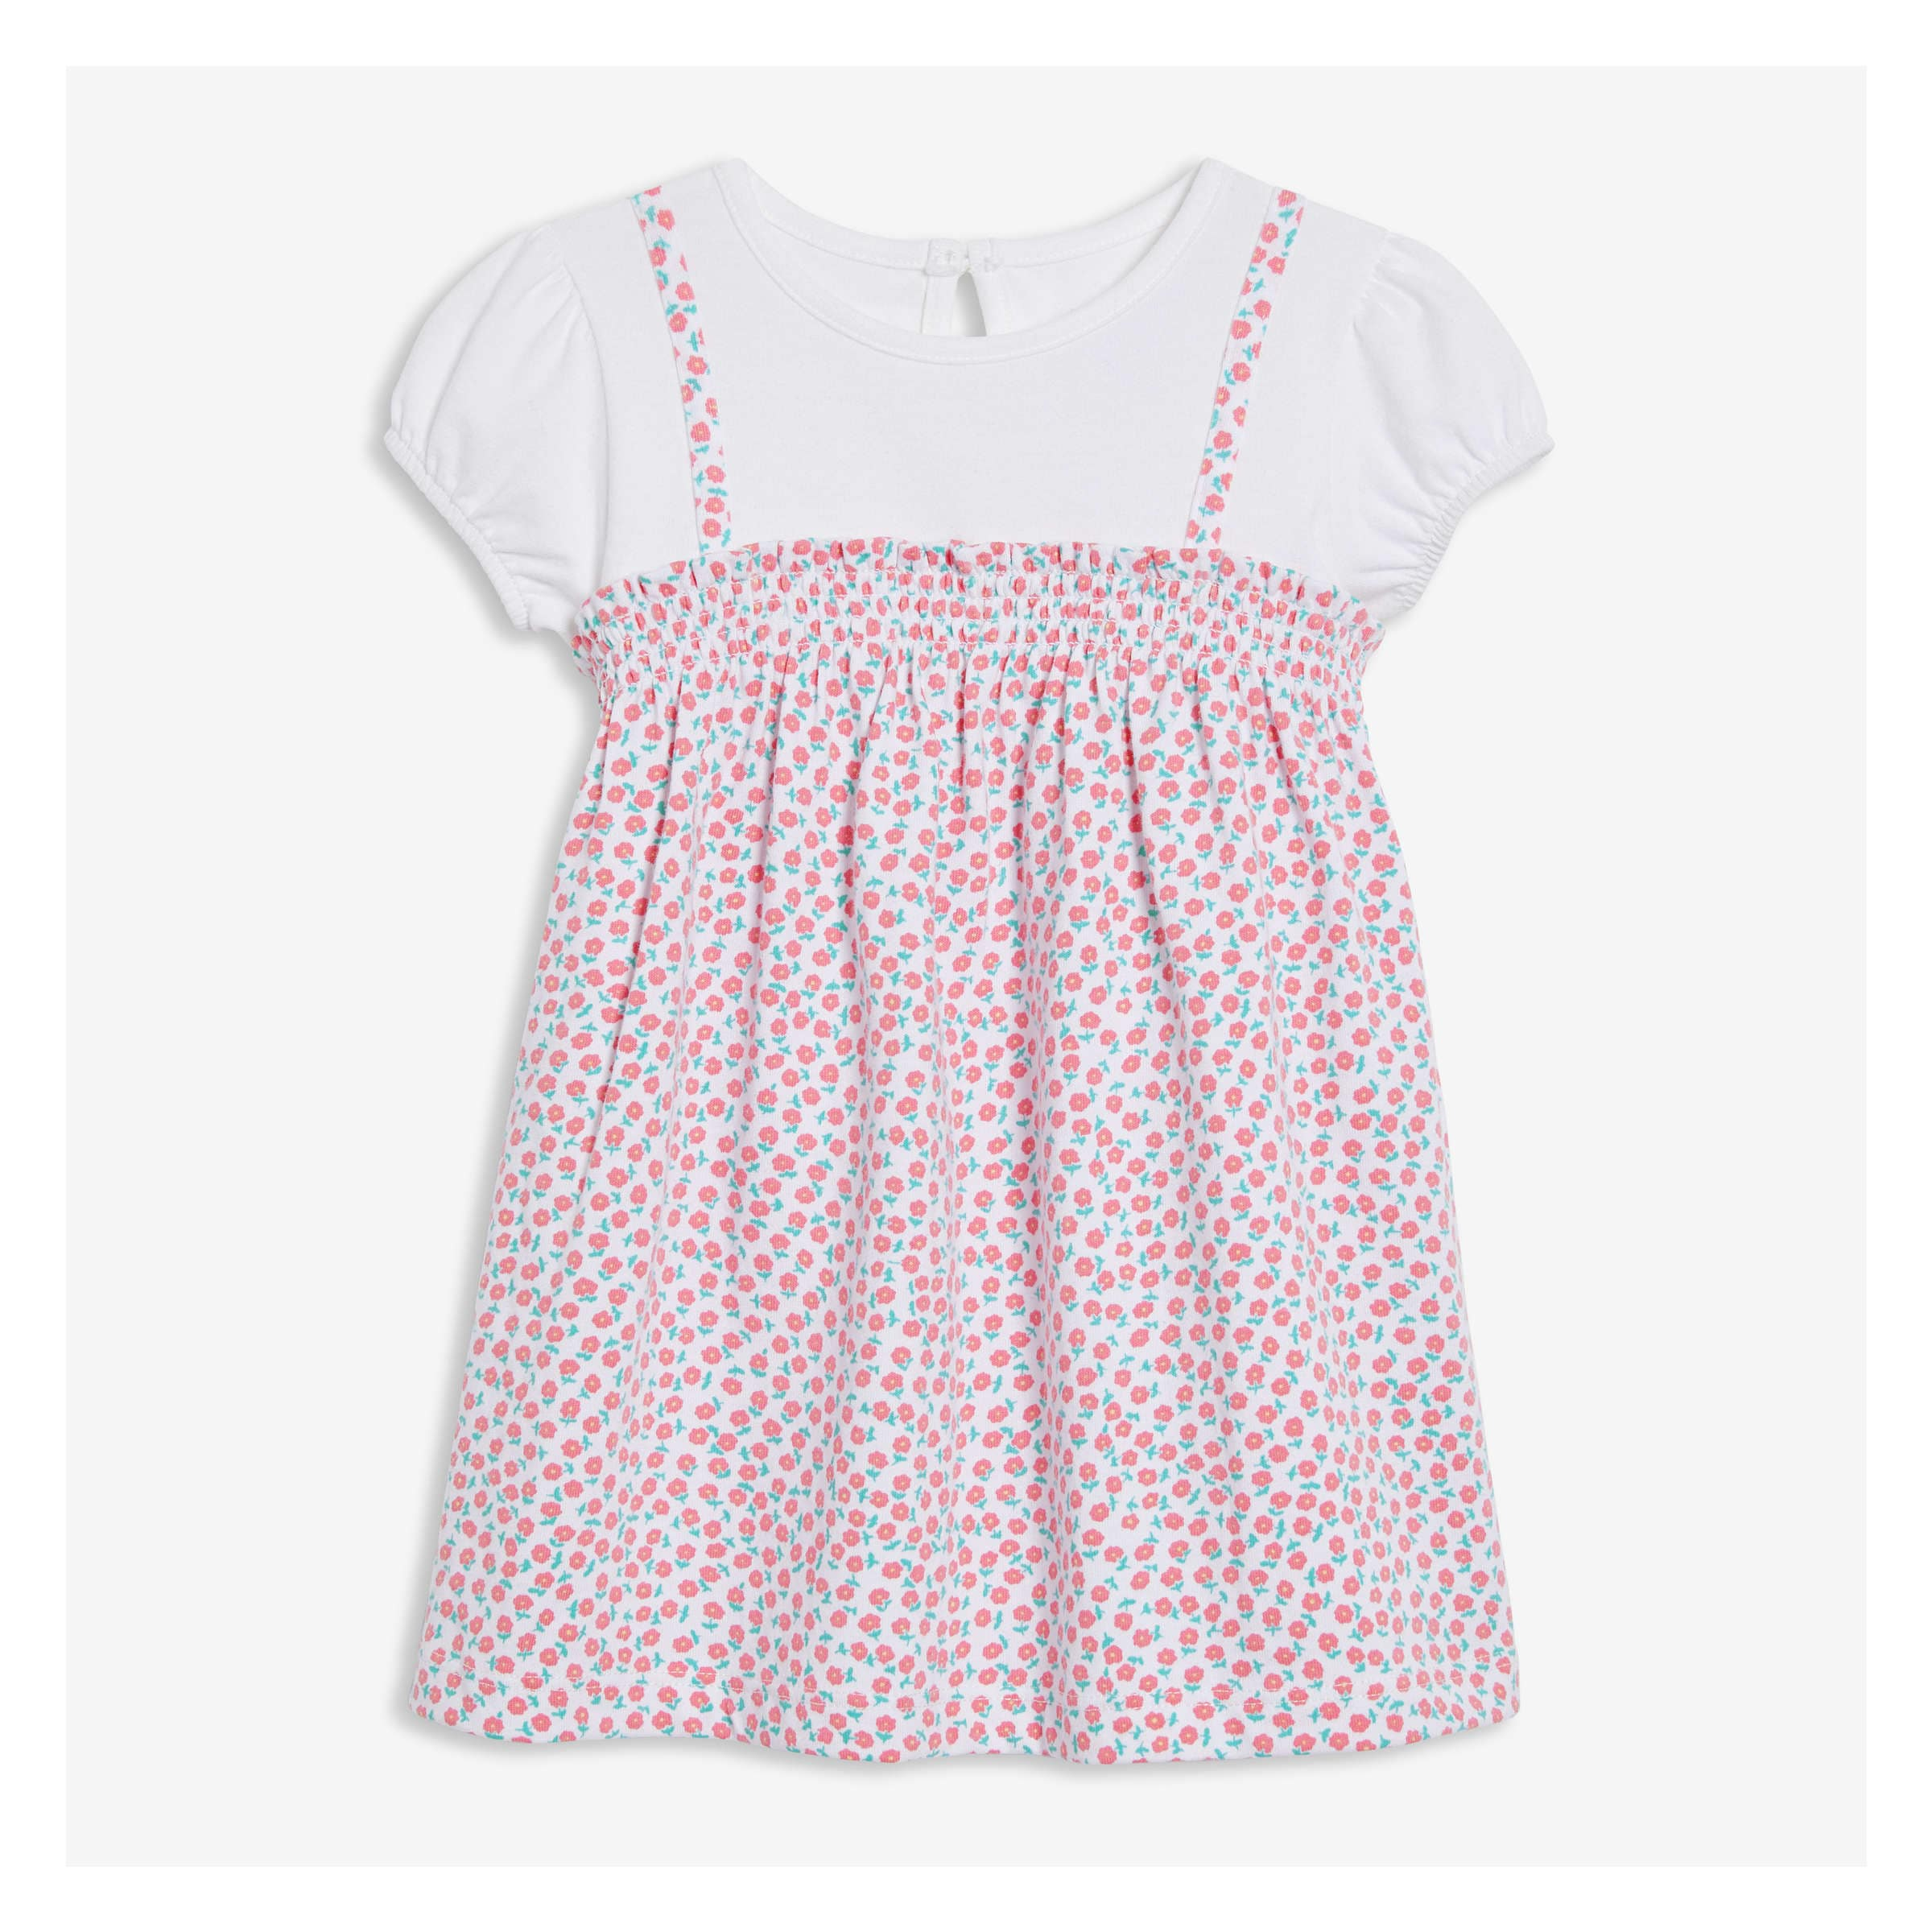 dc1fe04adc84 Baby Girls' Smocked Dress in Light Coral from Joe Fresh